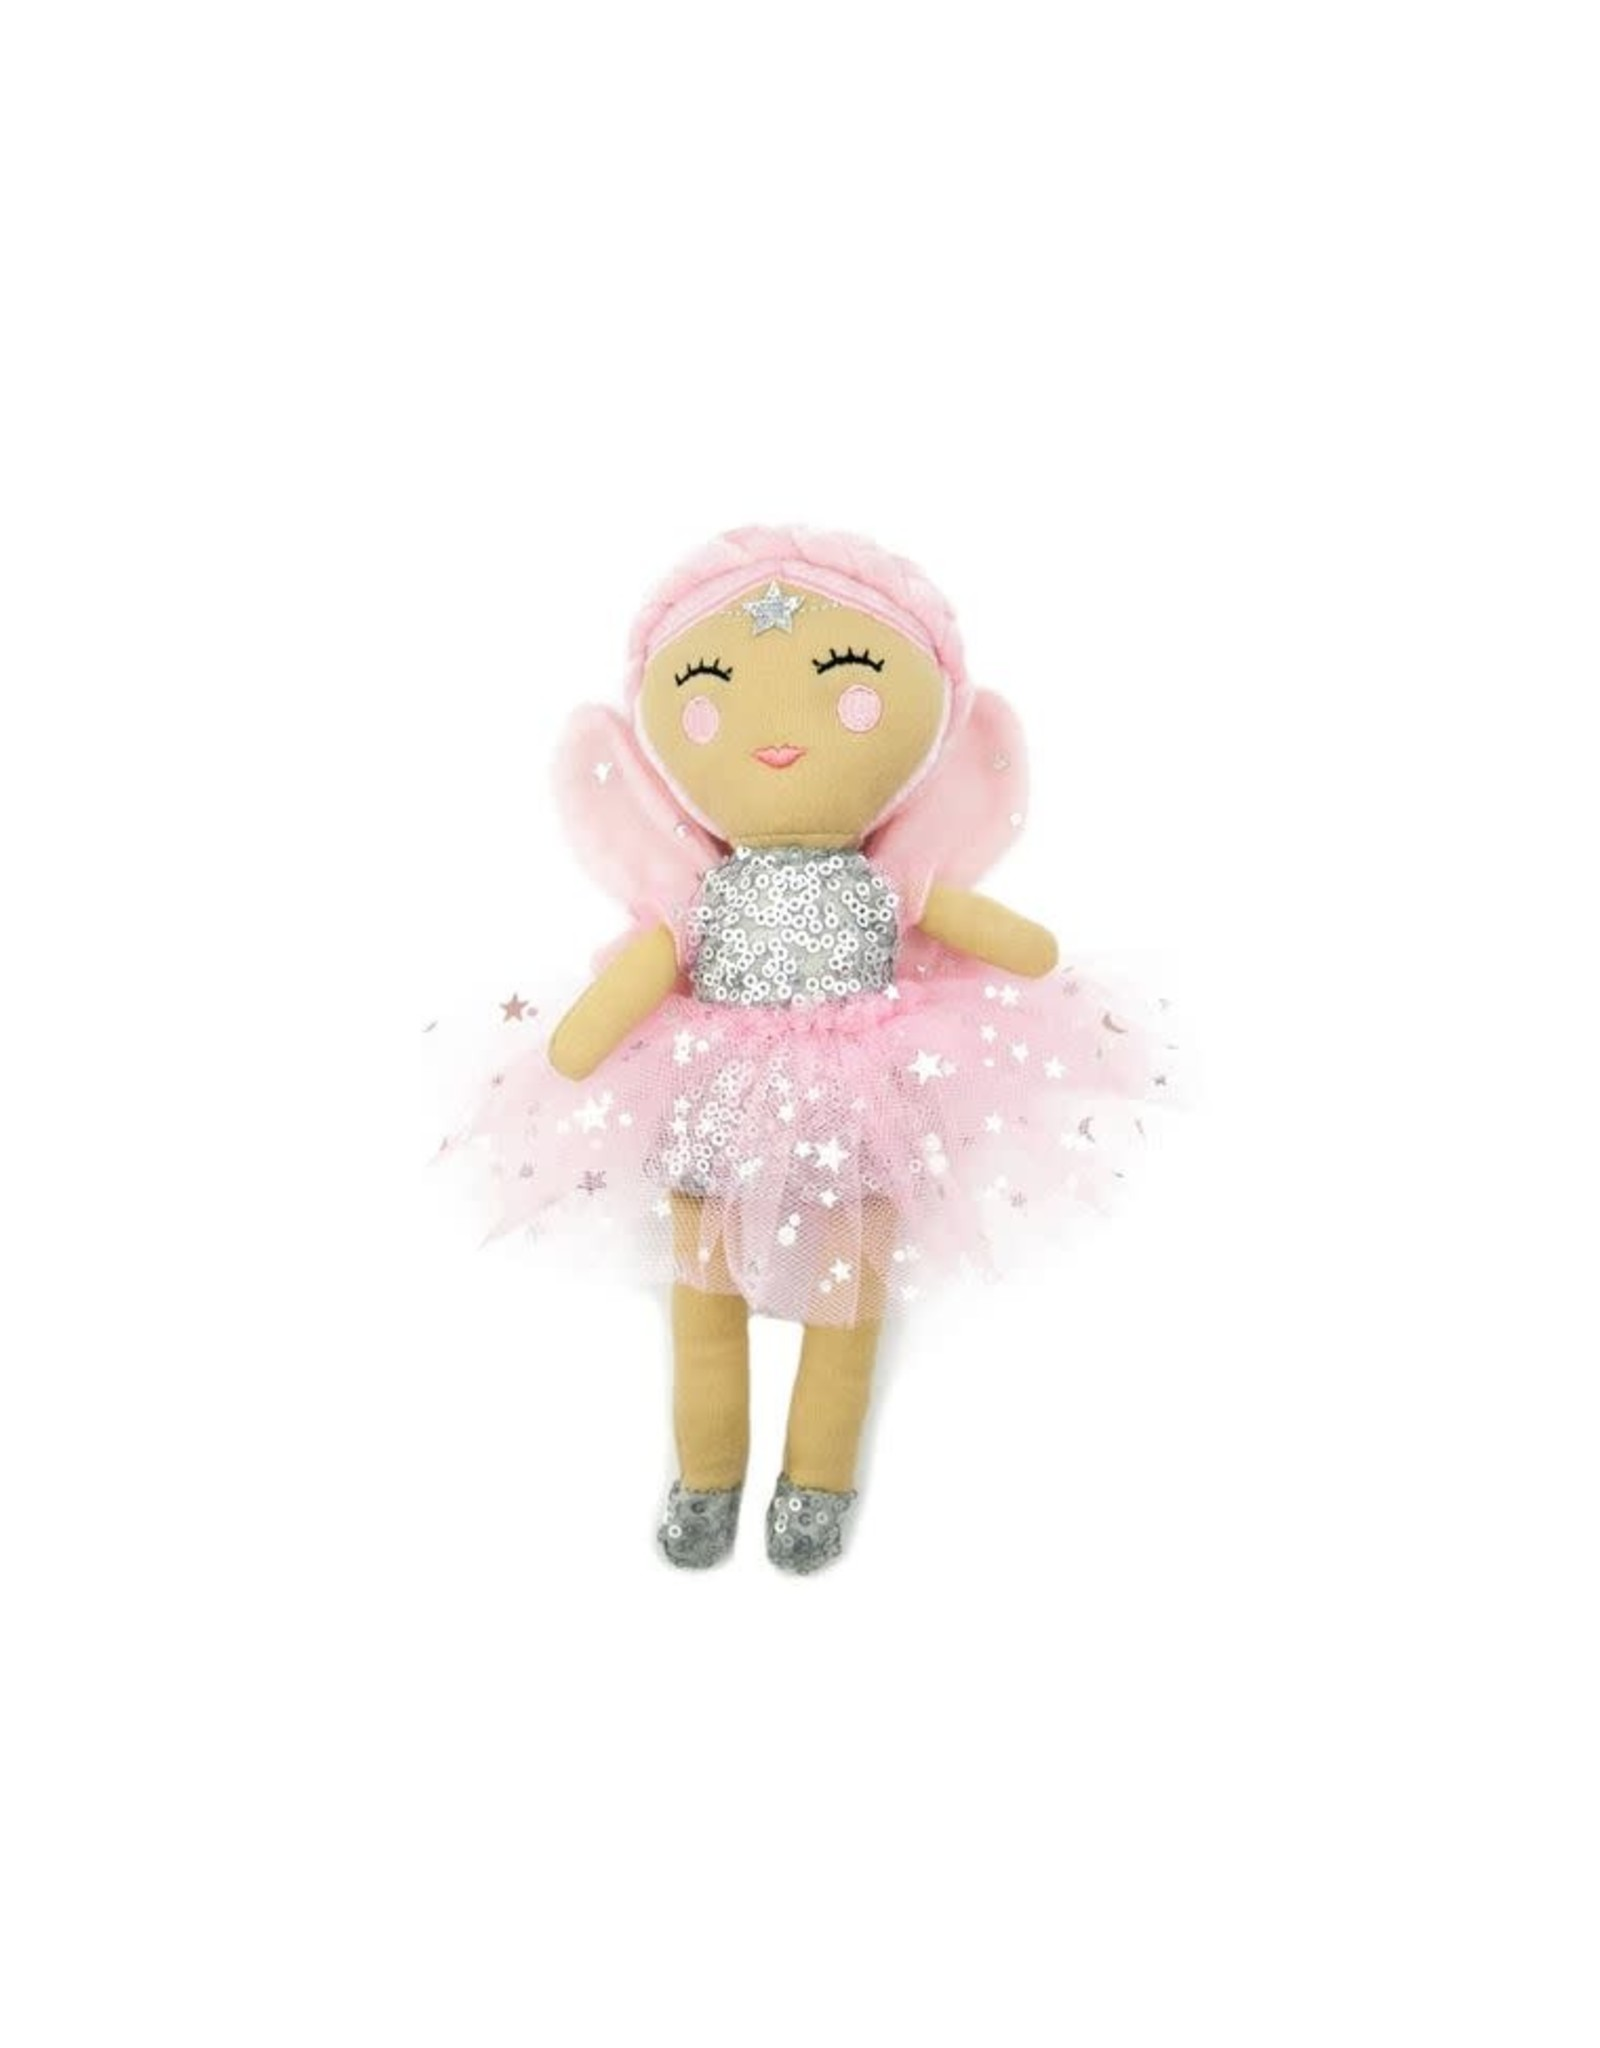 Kind Culture Co Fleur The Good Deed Fairy - Pink